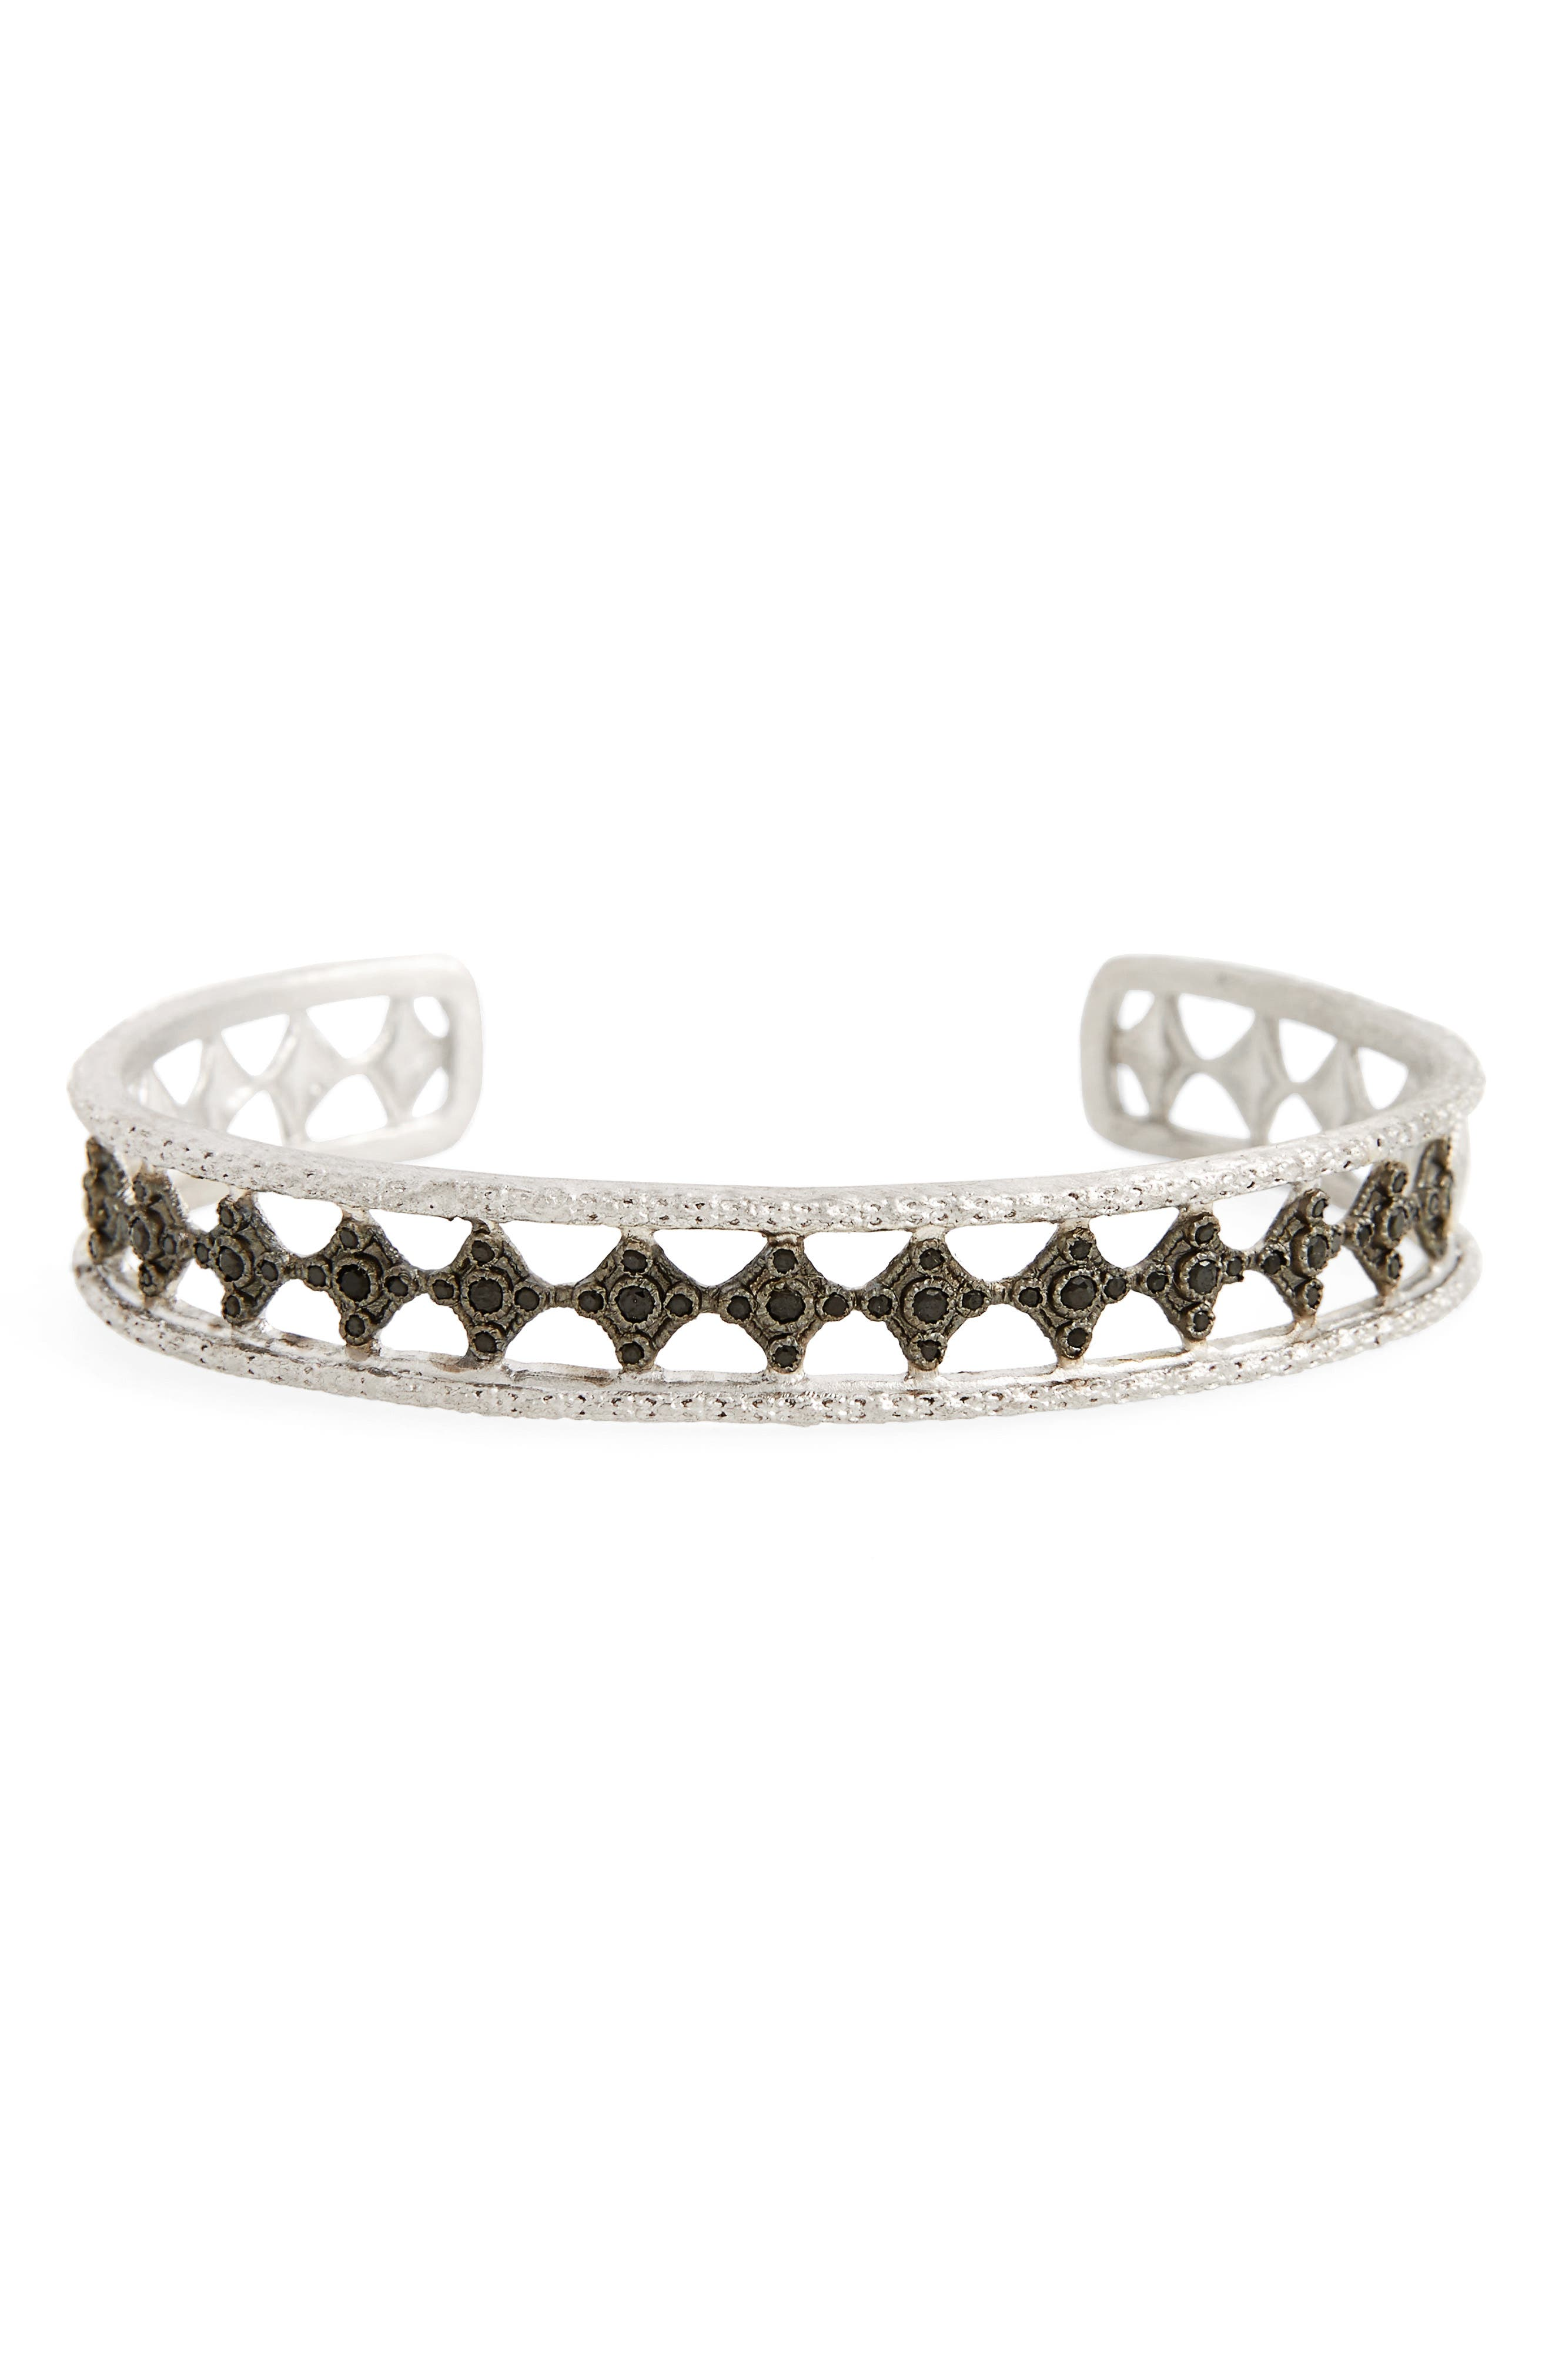 New World Eternity Cuff,                             Main thumbnail 1, color,                             Silver